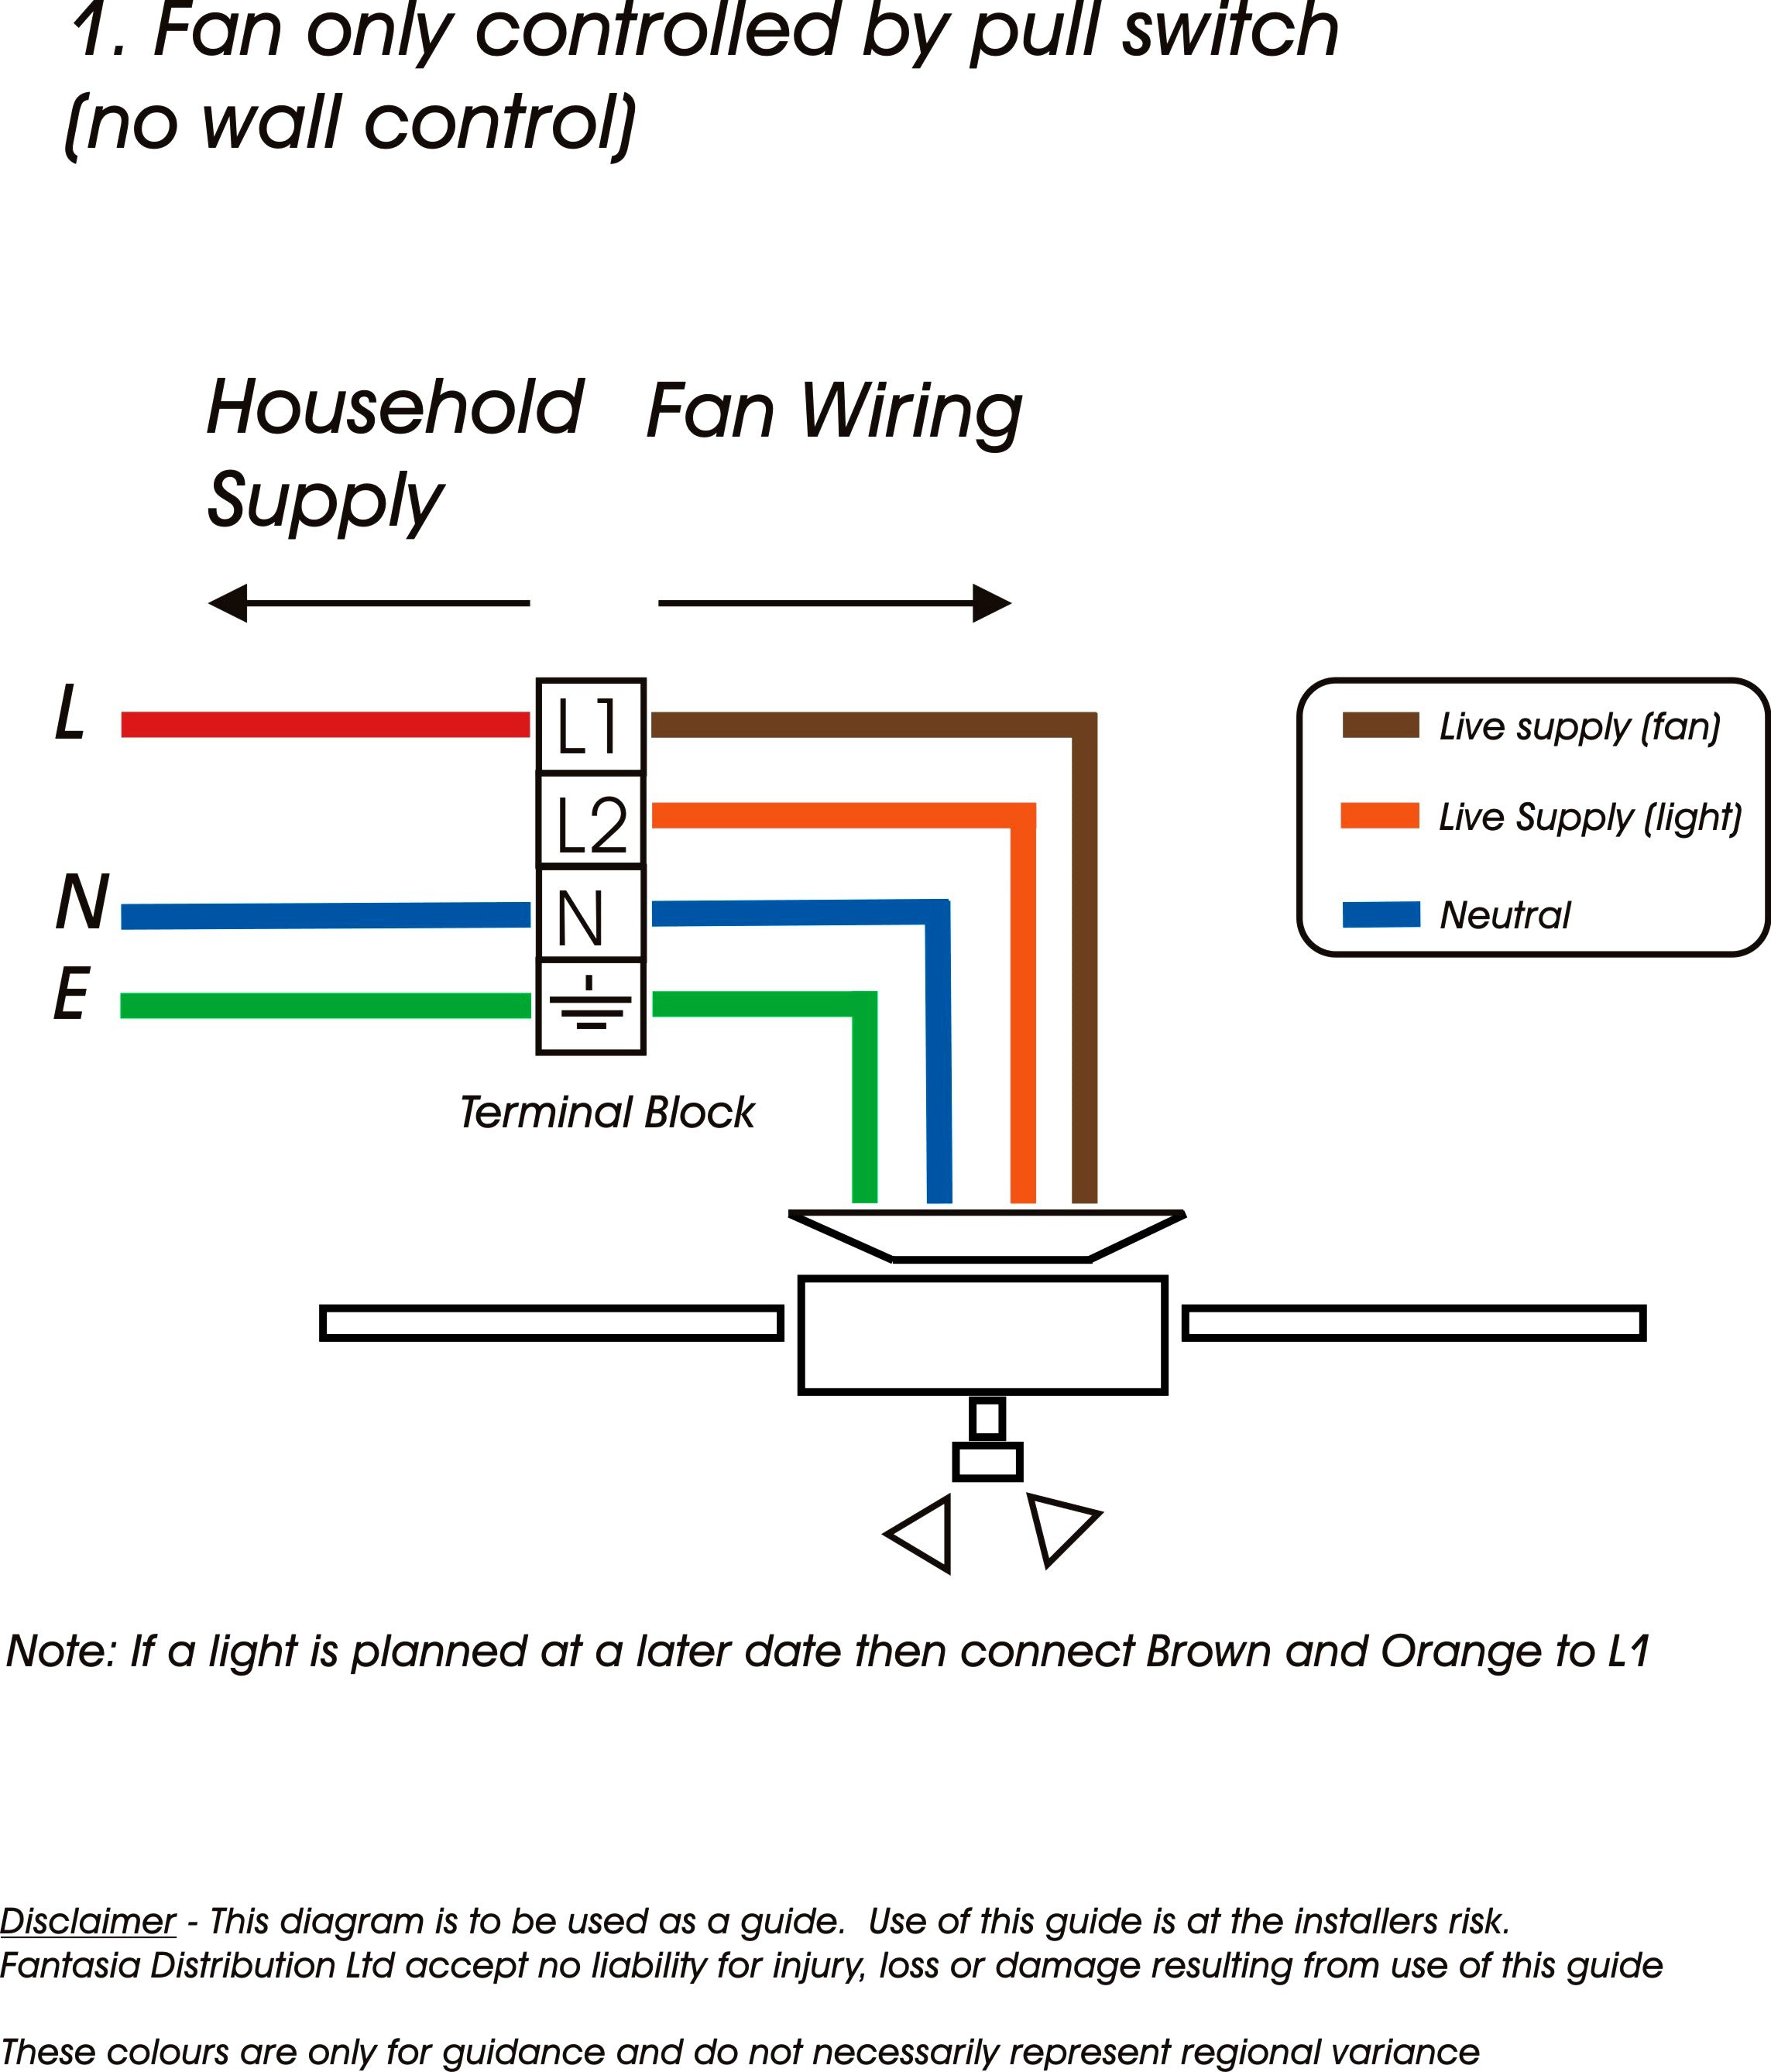 Hampton Bay Ceiling Fan Wiring Schematic Diagram | Wiring Diagram - Hampton Bay Ceiling Fan Wiring Diagram